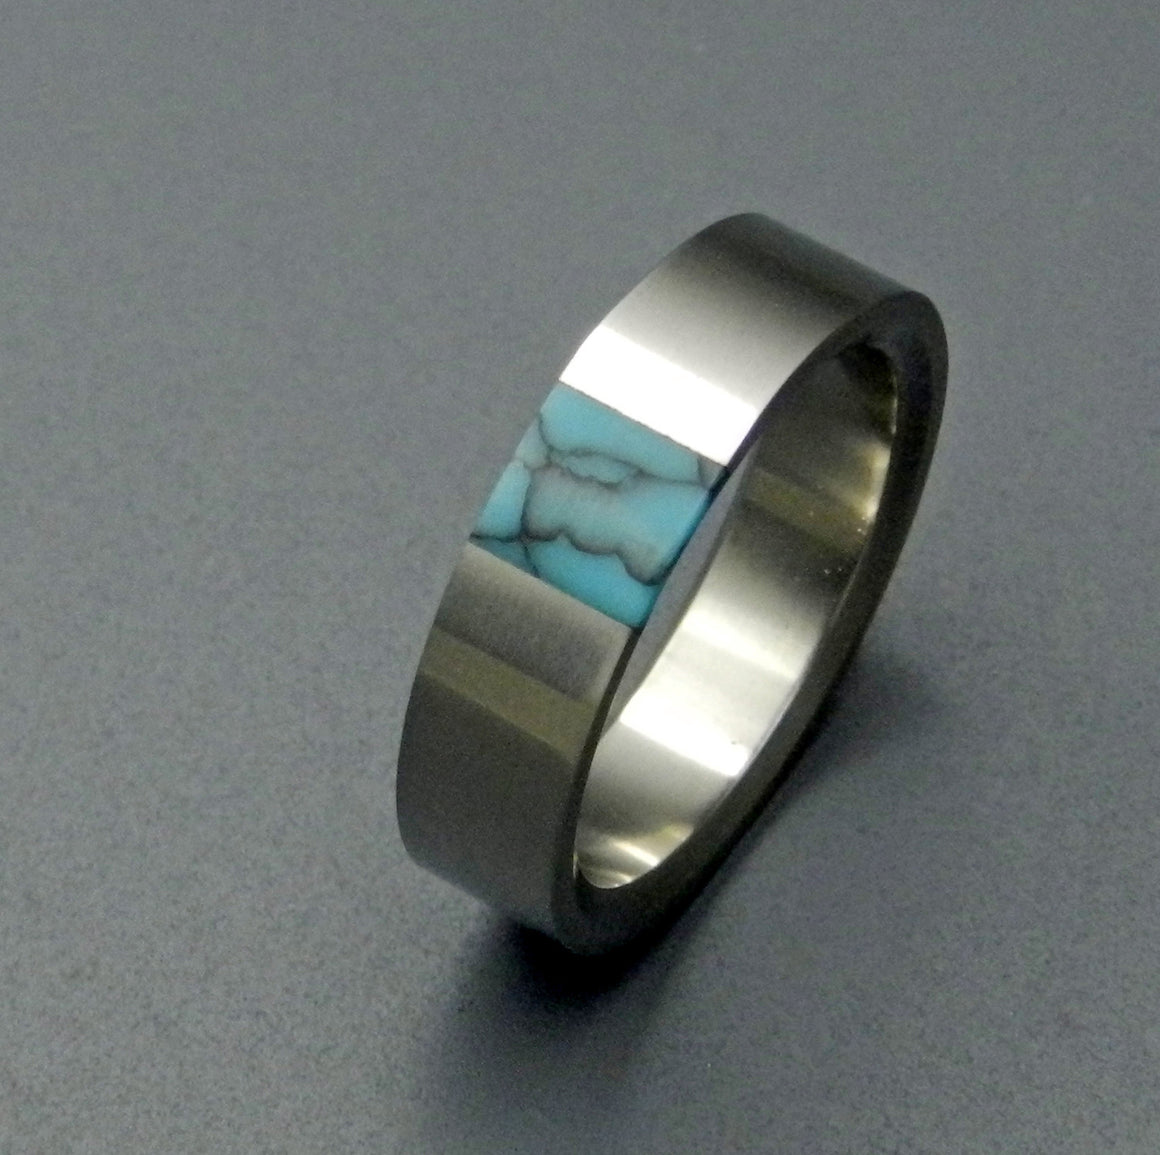 TRUE NORTH | Turquoise Titanium Women's Engagement Wedding Rings - Minter and Richter Designs